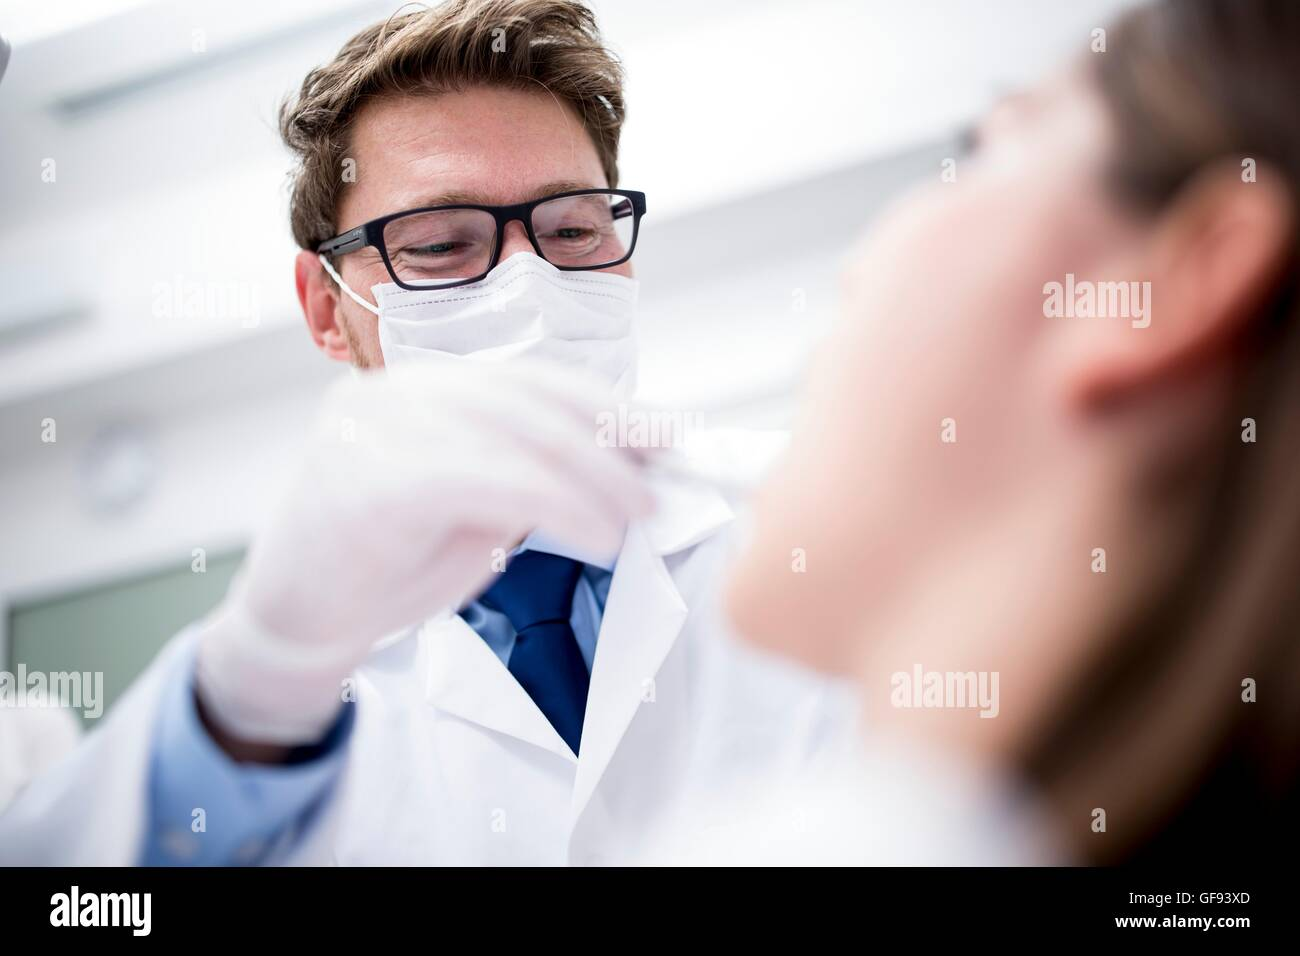 MODEL RELEASED. Dentist examining patient's teeth in dentist clinic. - Stock Image